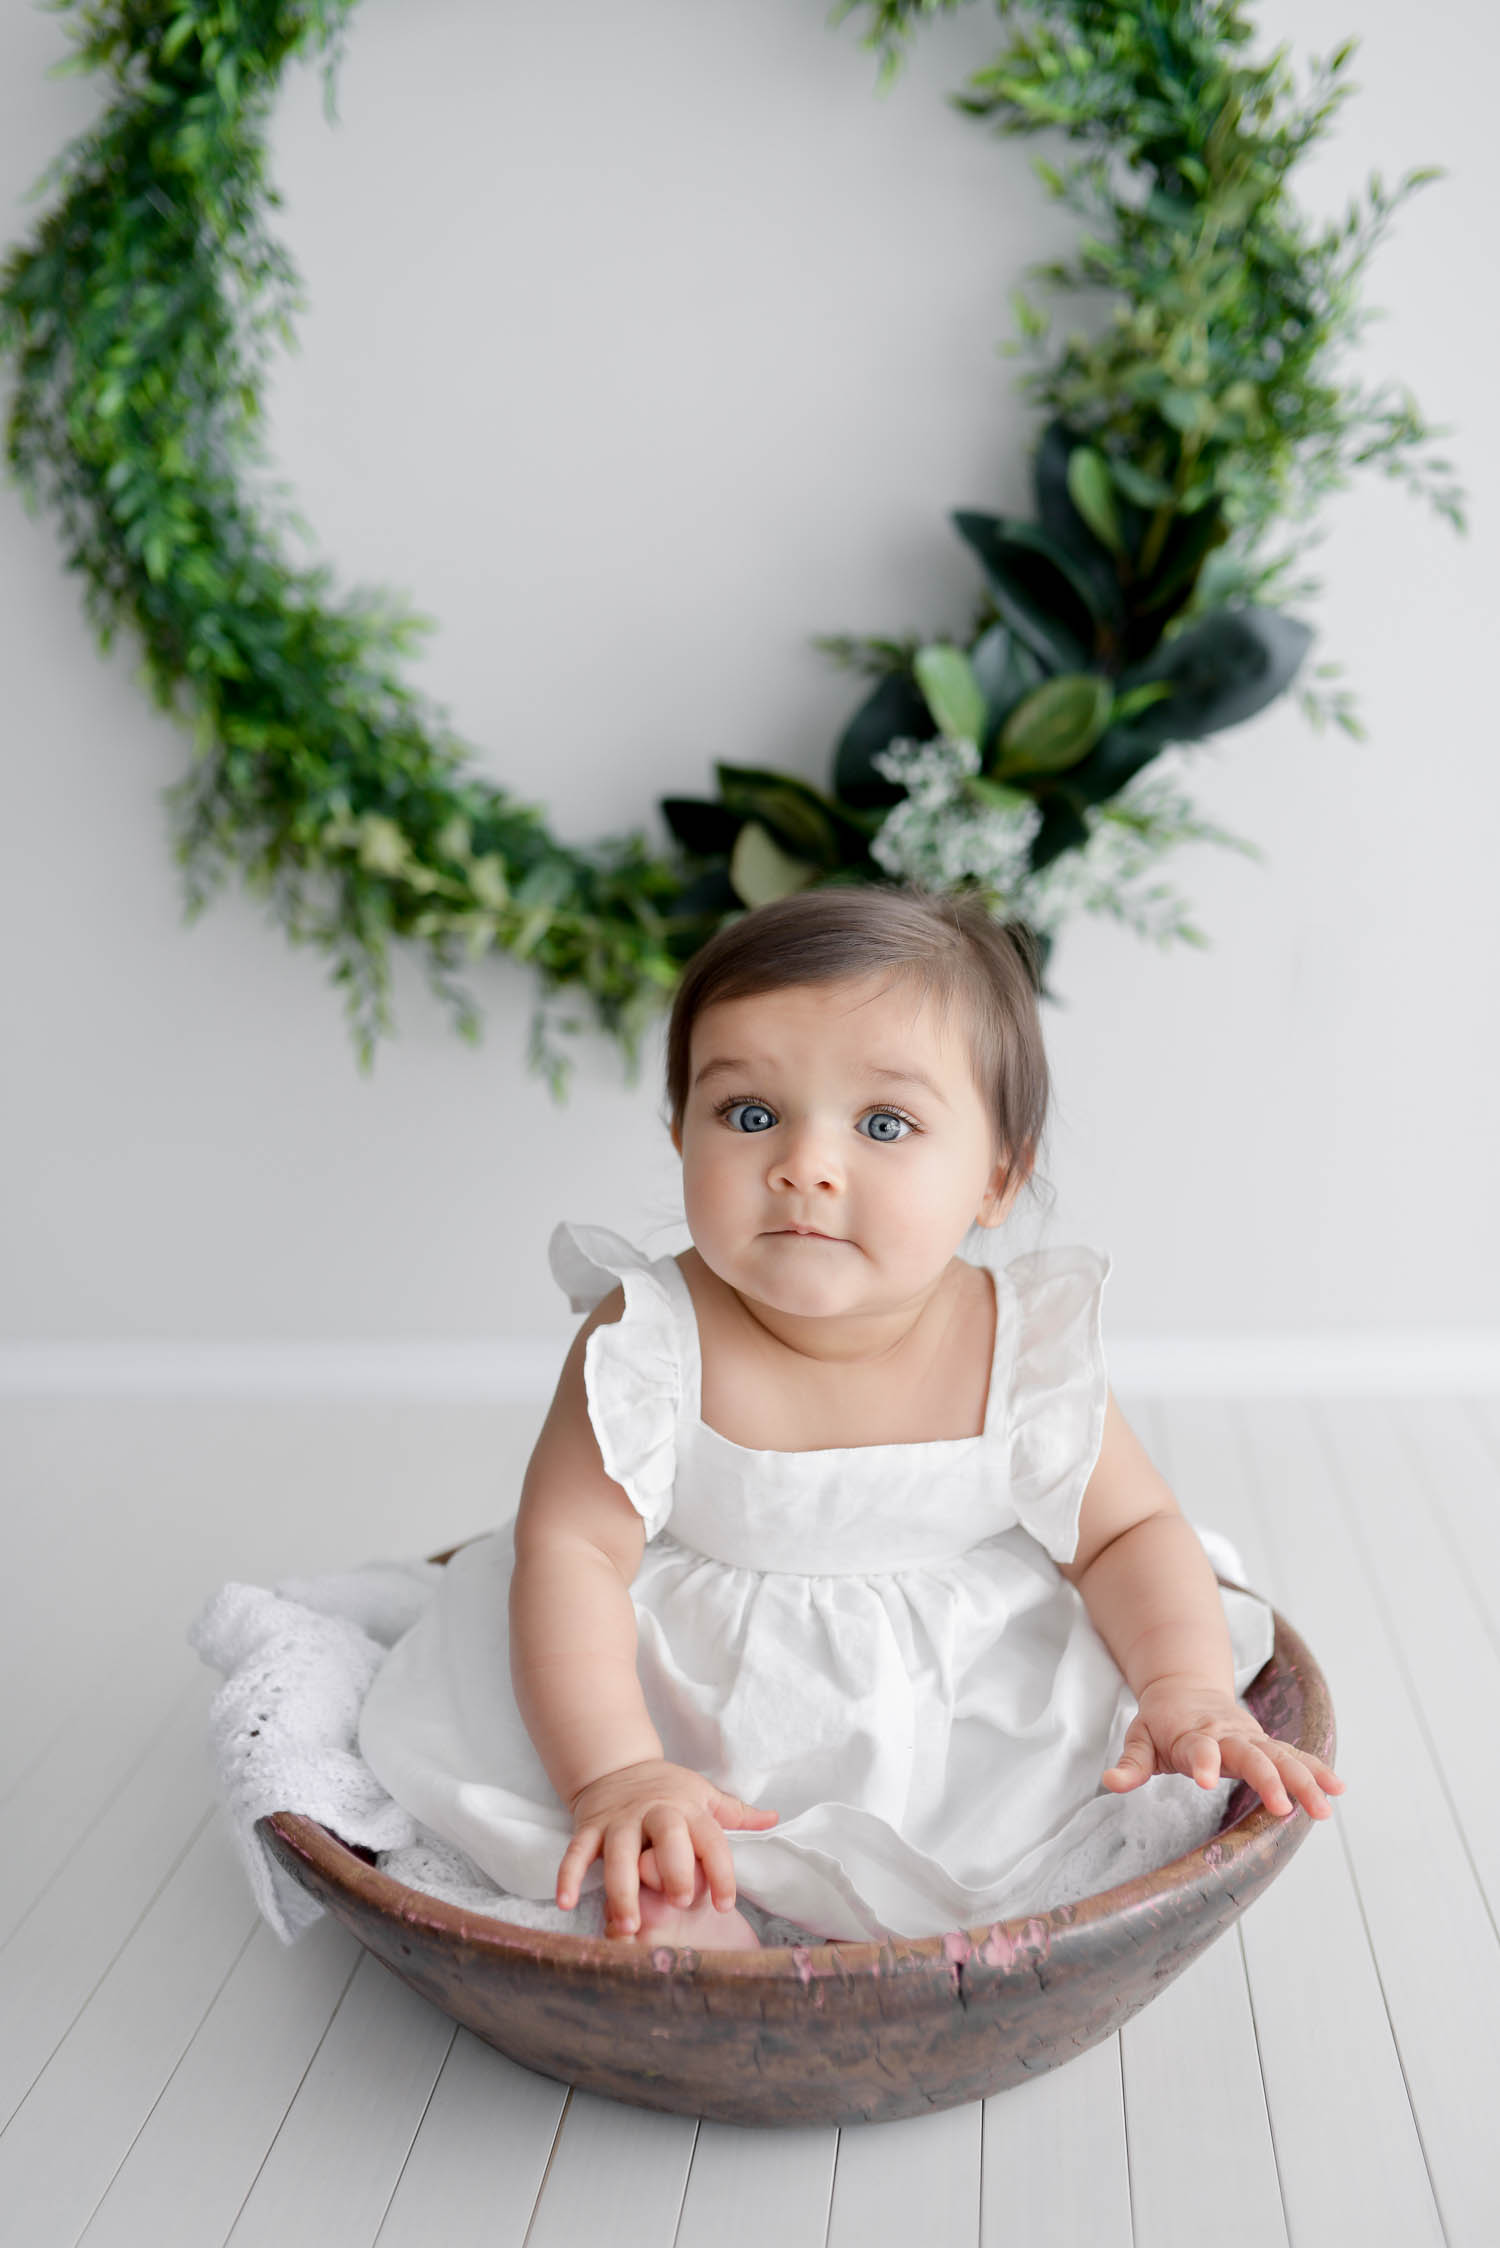 Baby sitting in bowl in white dress with christmas wreath in background